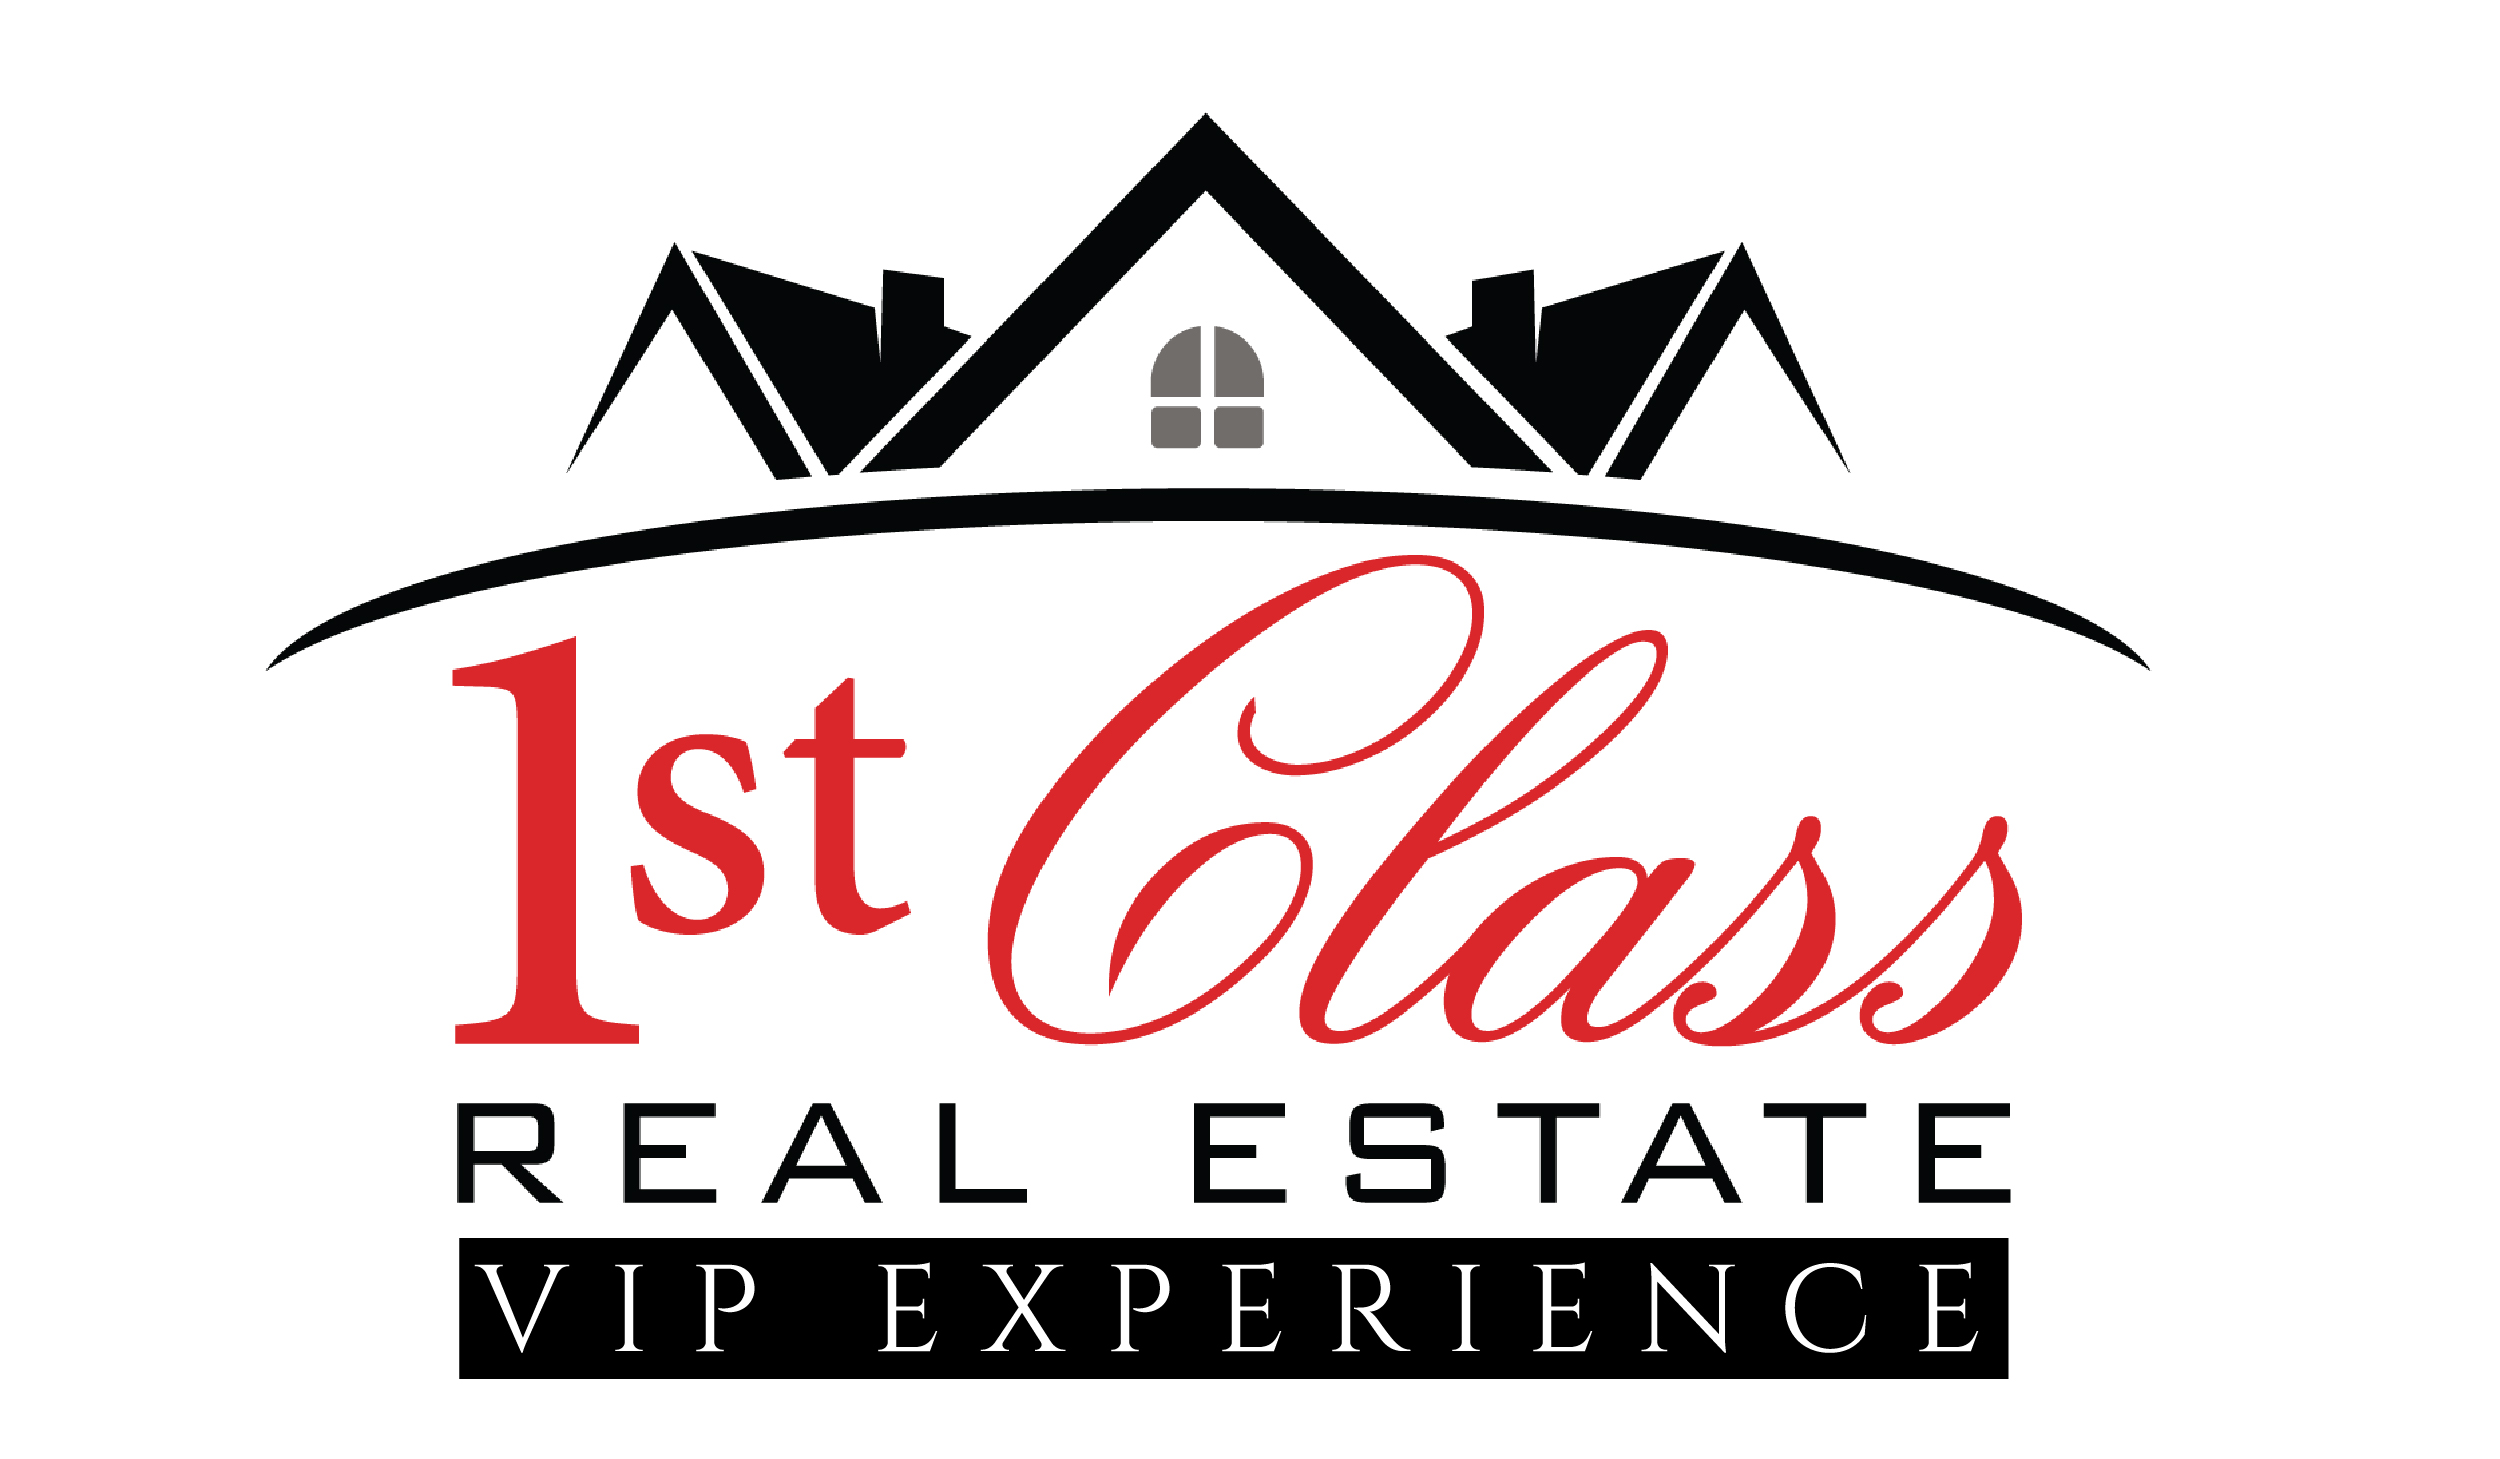 1st Class Real Estate VIP Experience logo